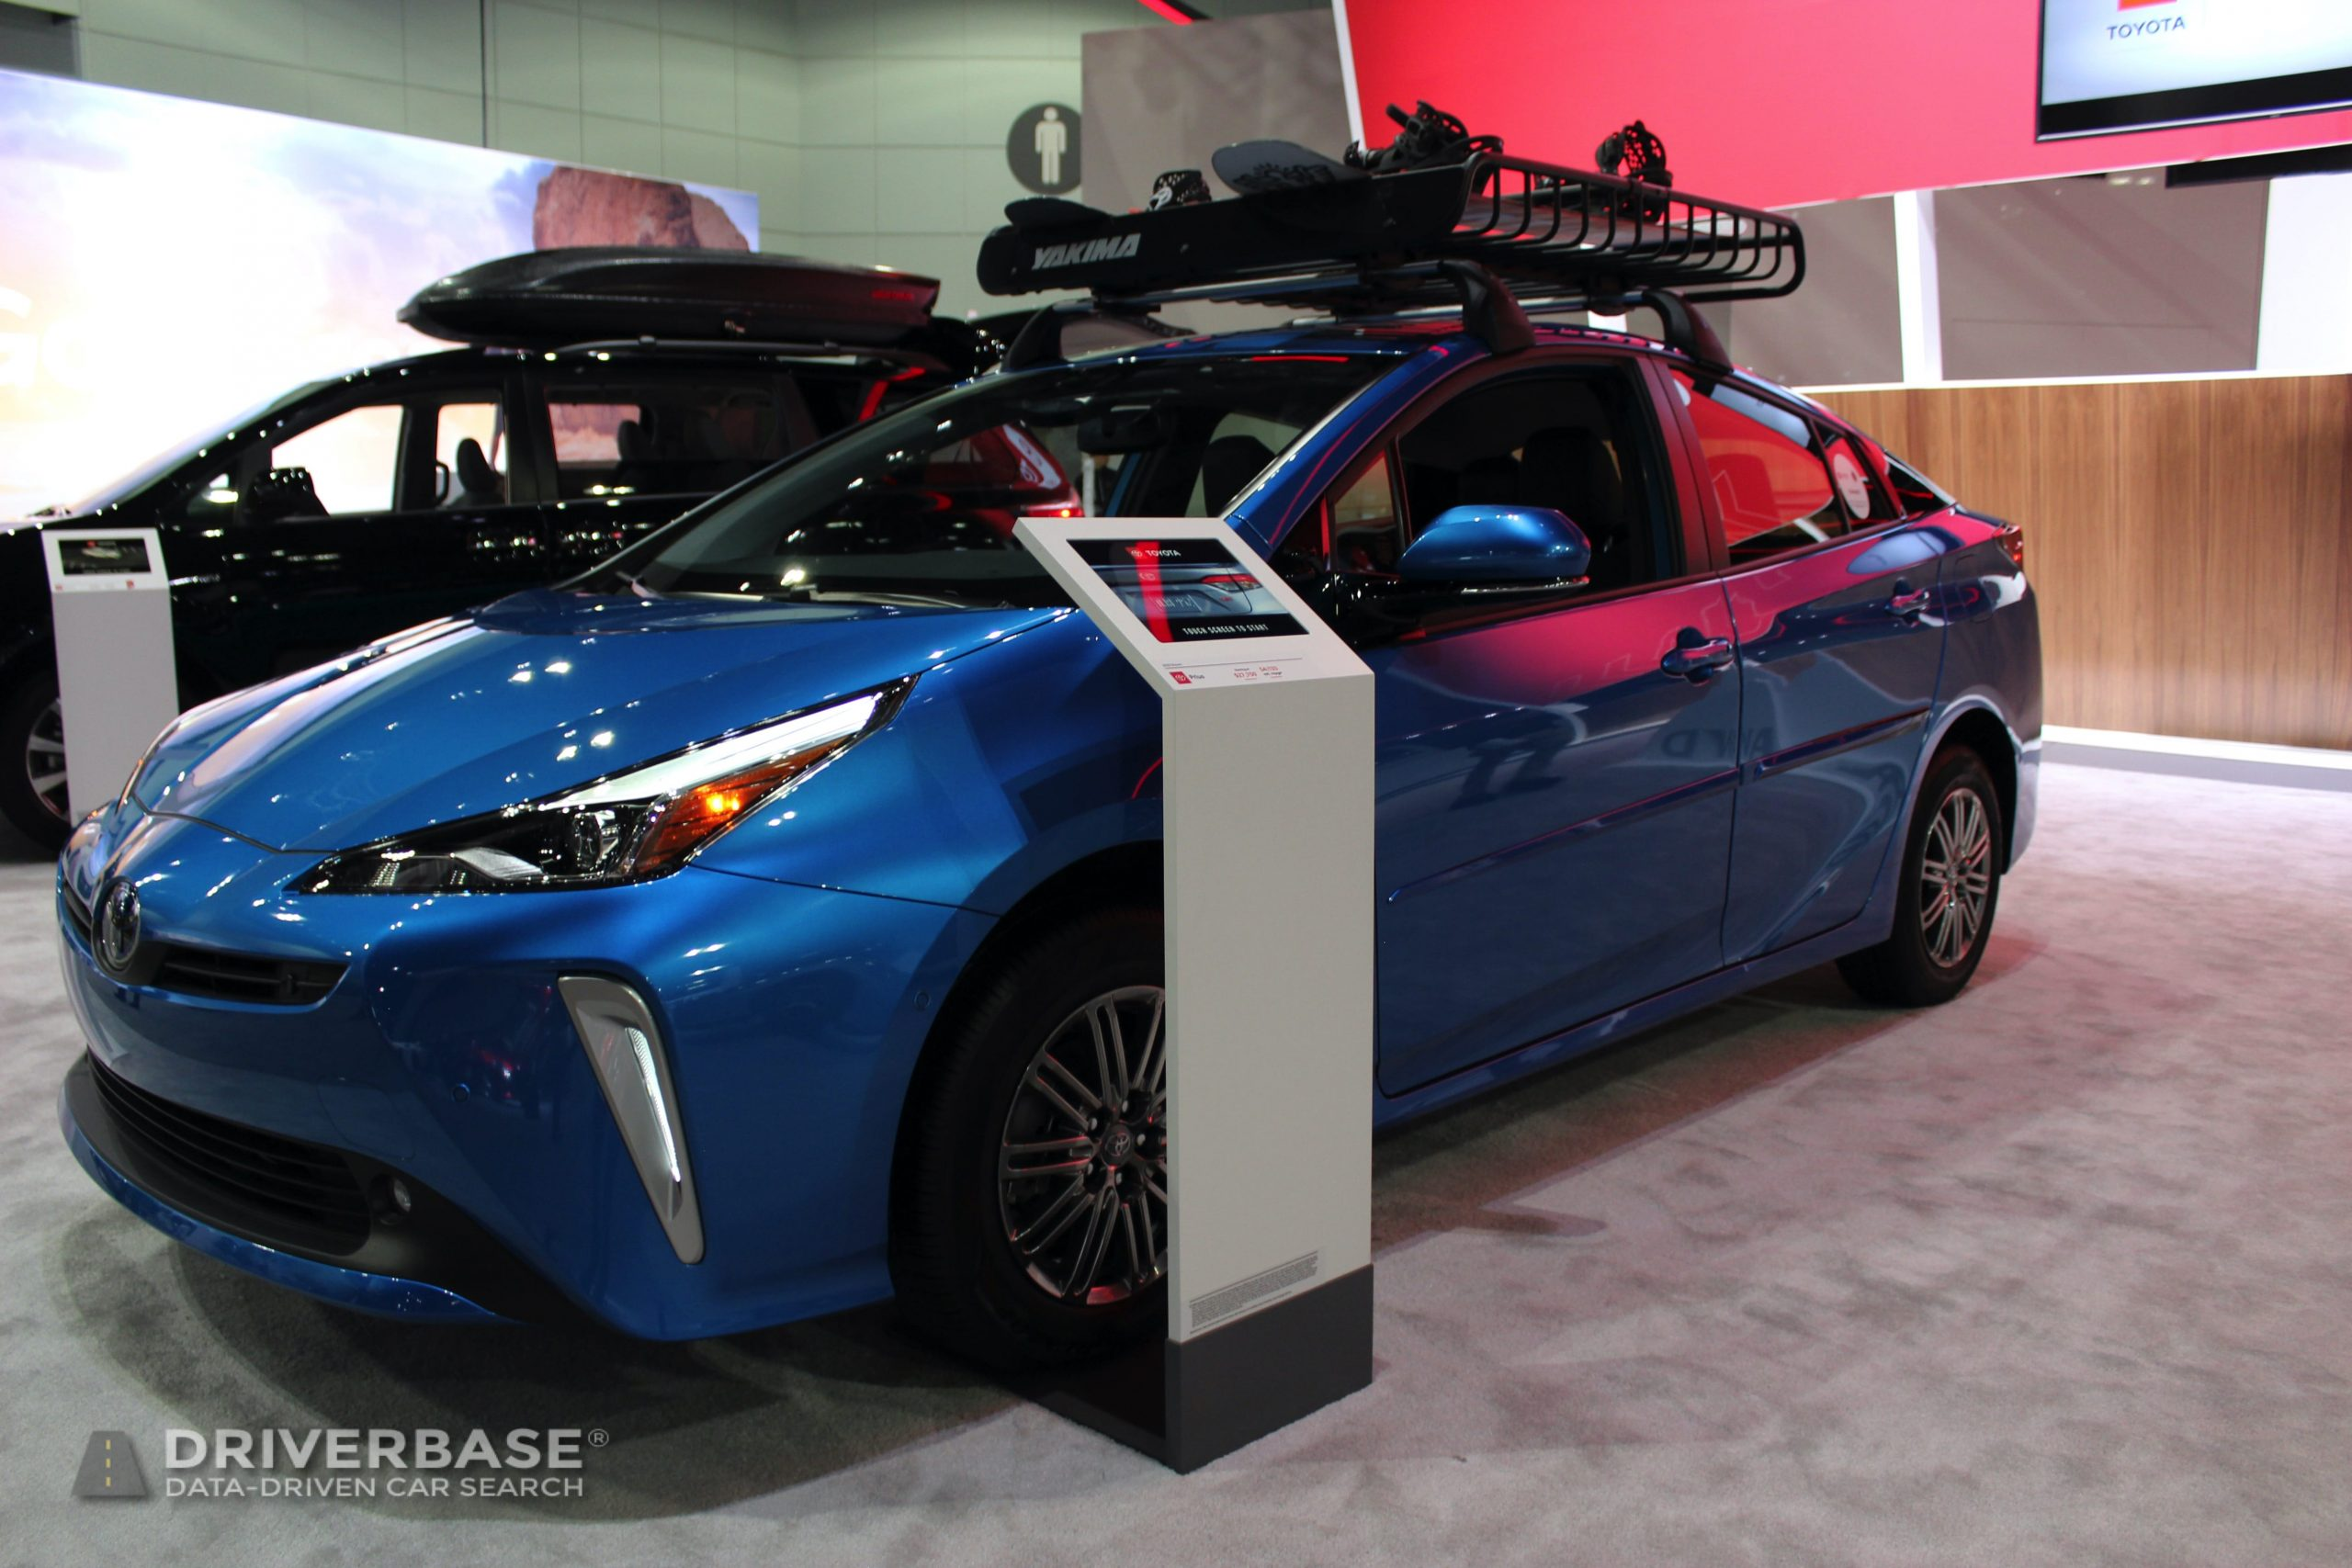 2020 Toyota Prius Hybrid All Wheel Drive at the 2019 Los Angeles Auto Show